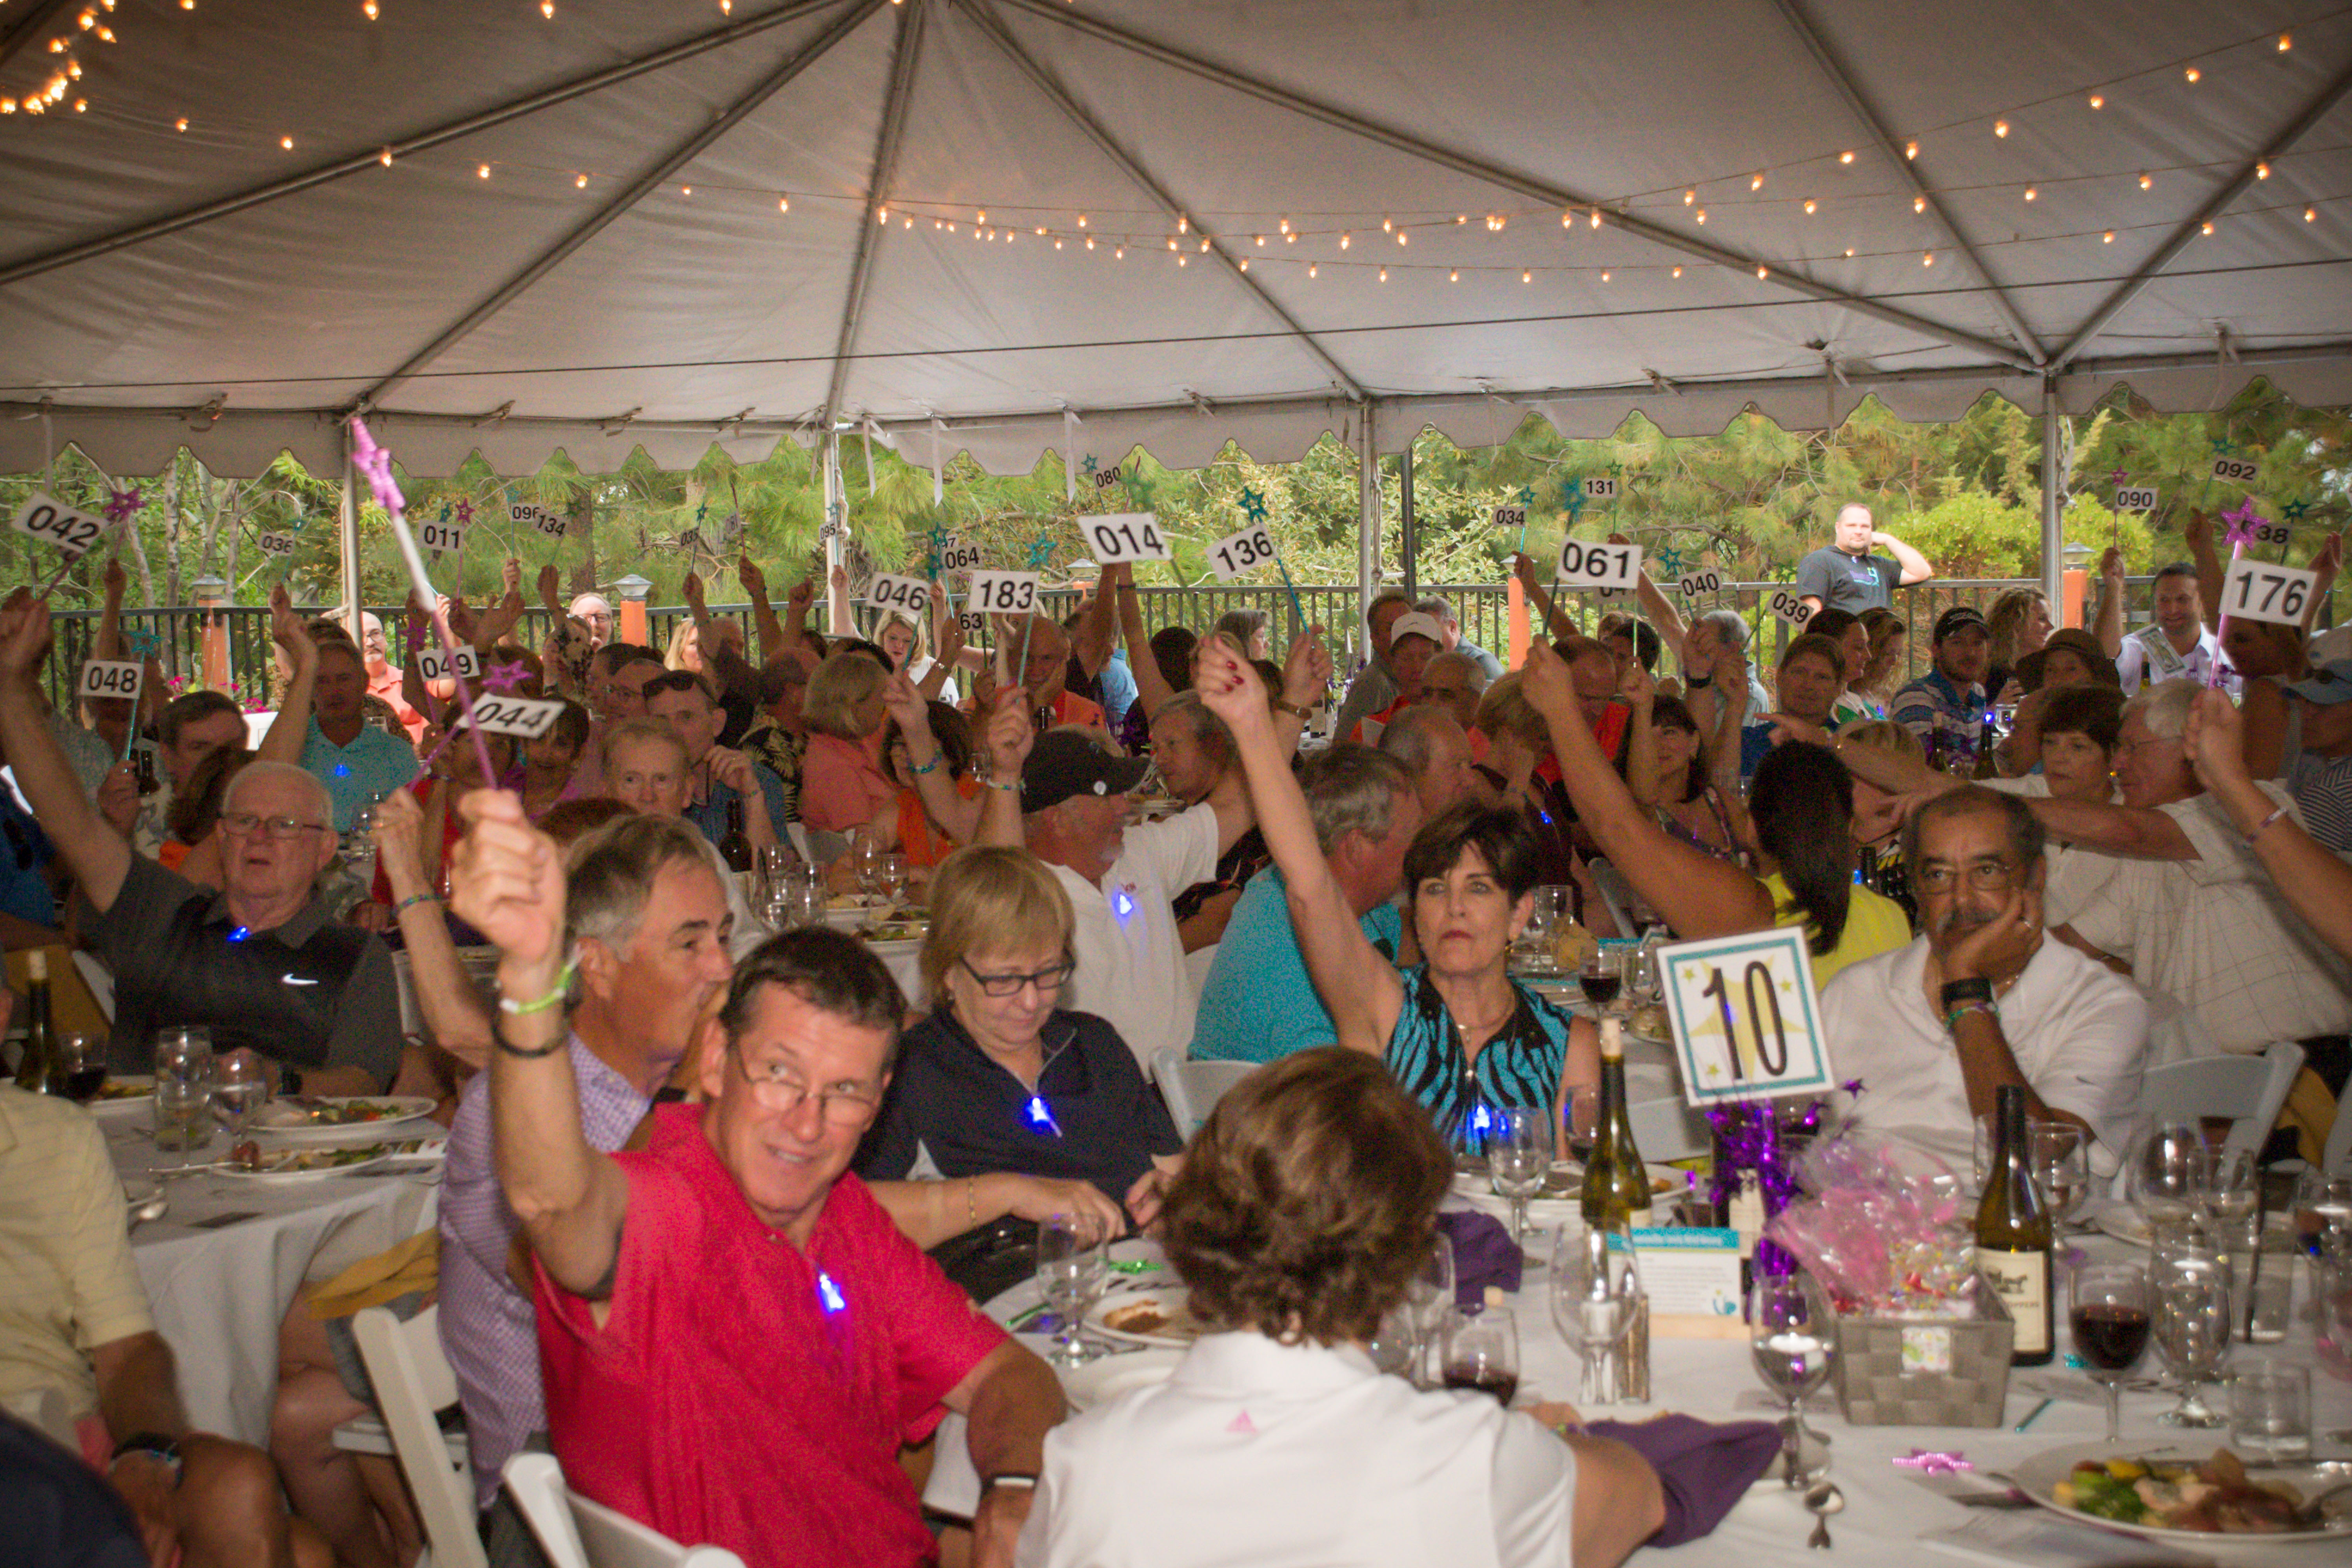 MountainStar's Birdies for Babies raises more than $278,000!